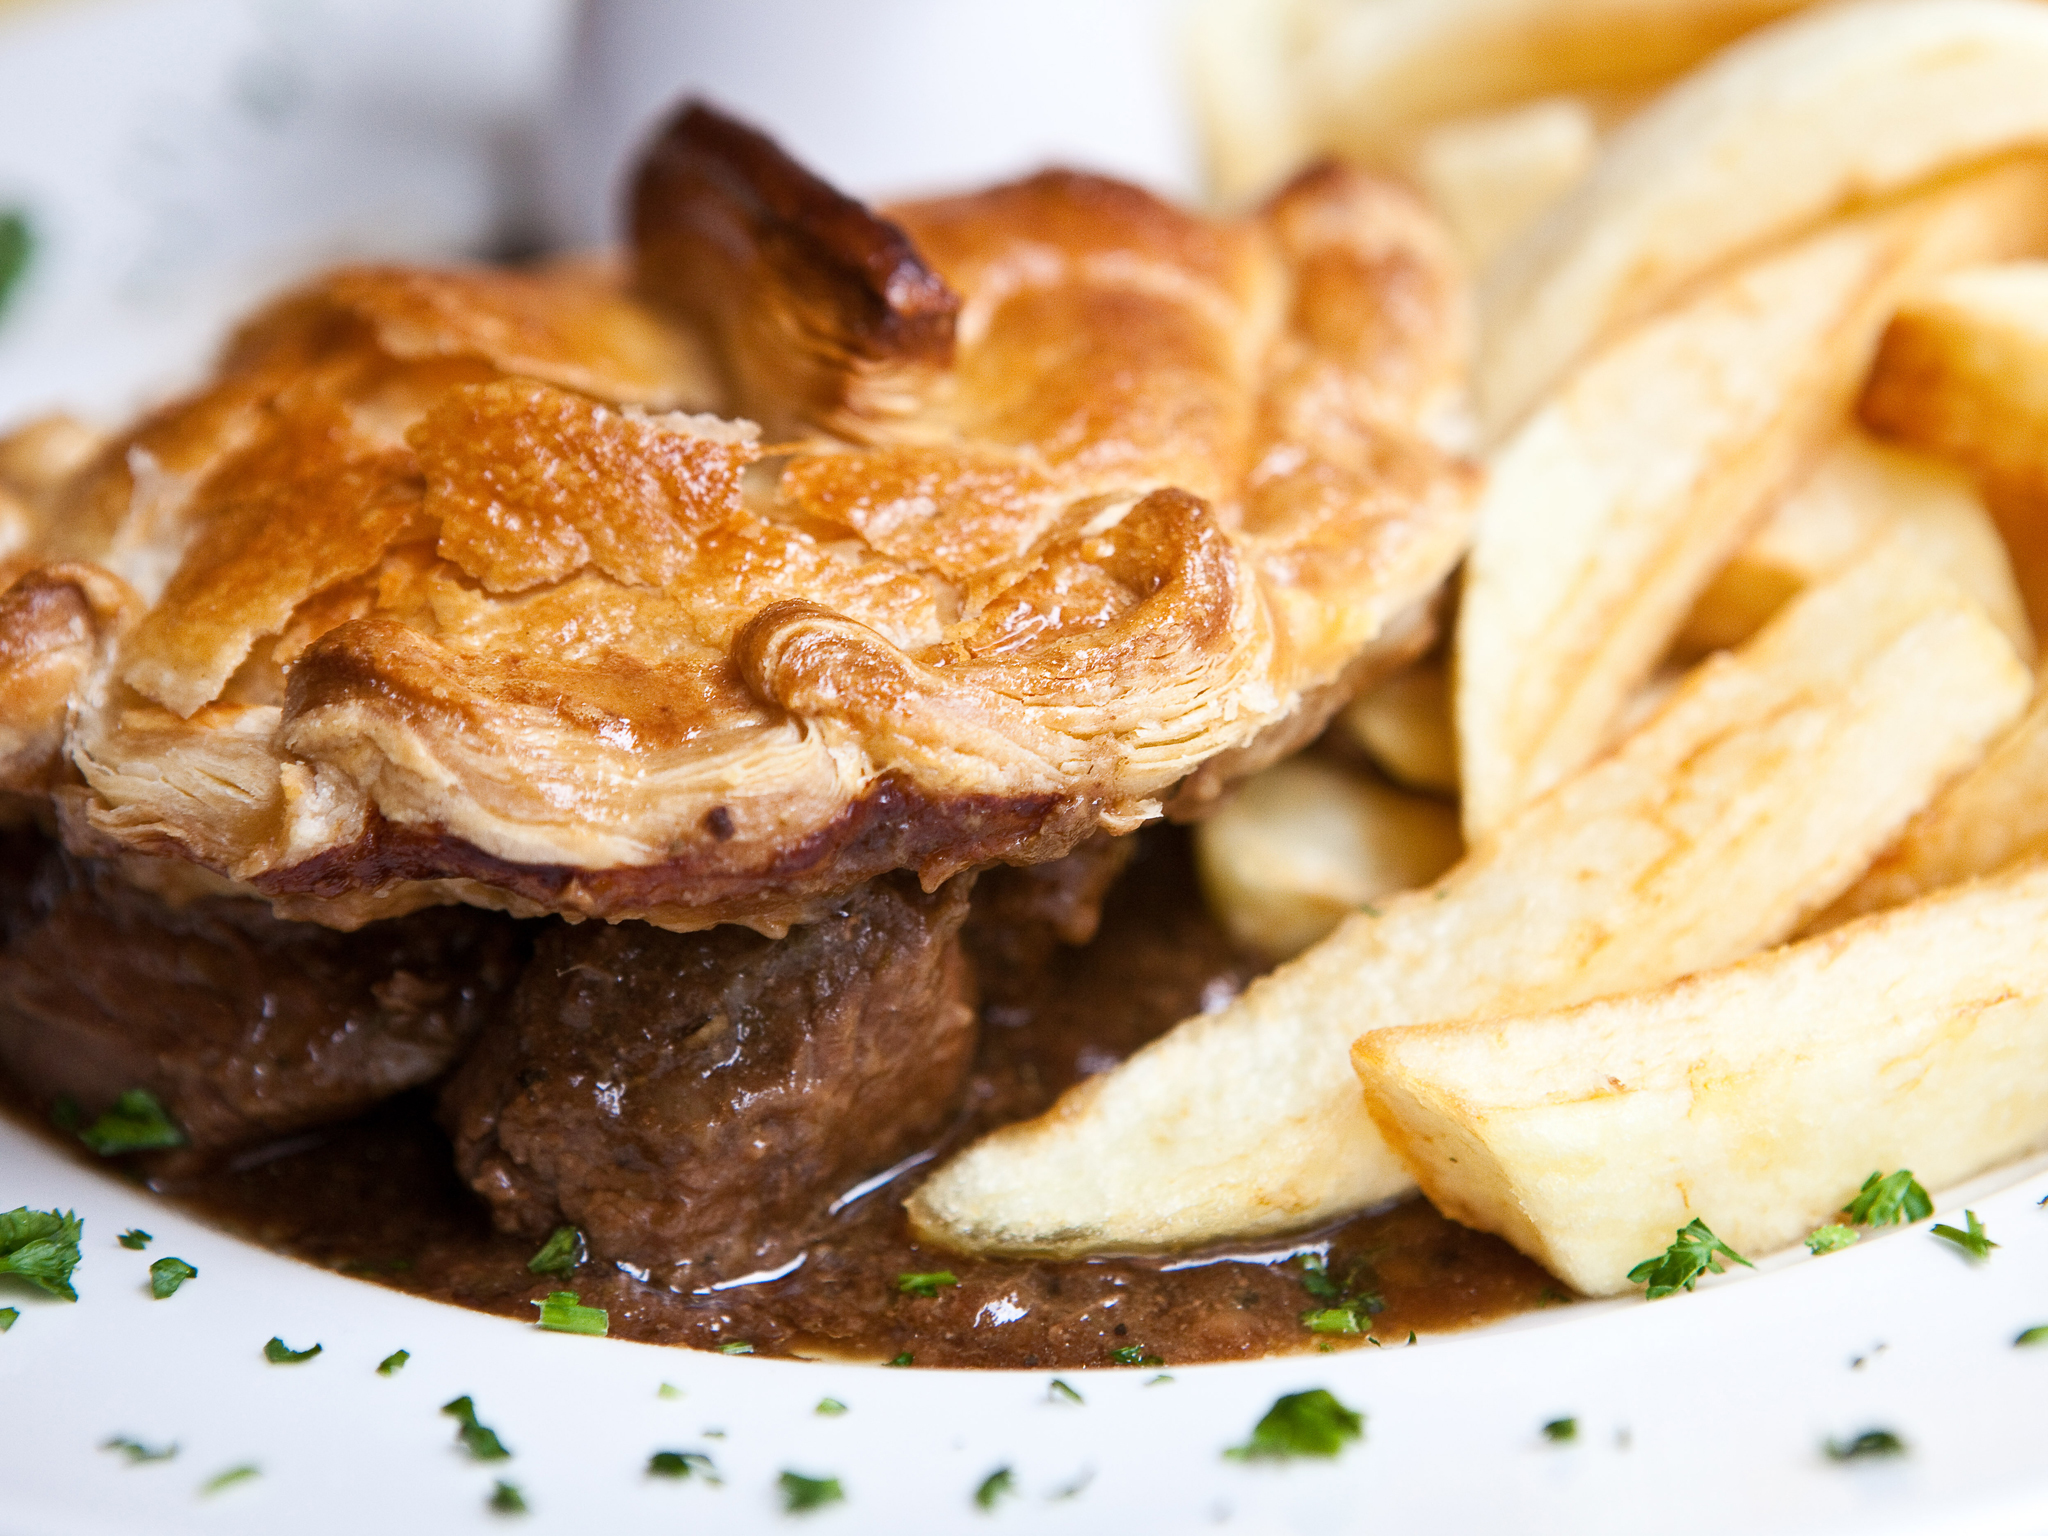 Steak and ale pie at Golden Union Fish Bar